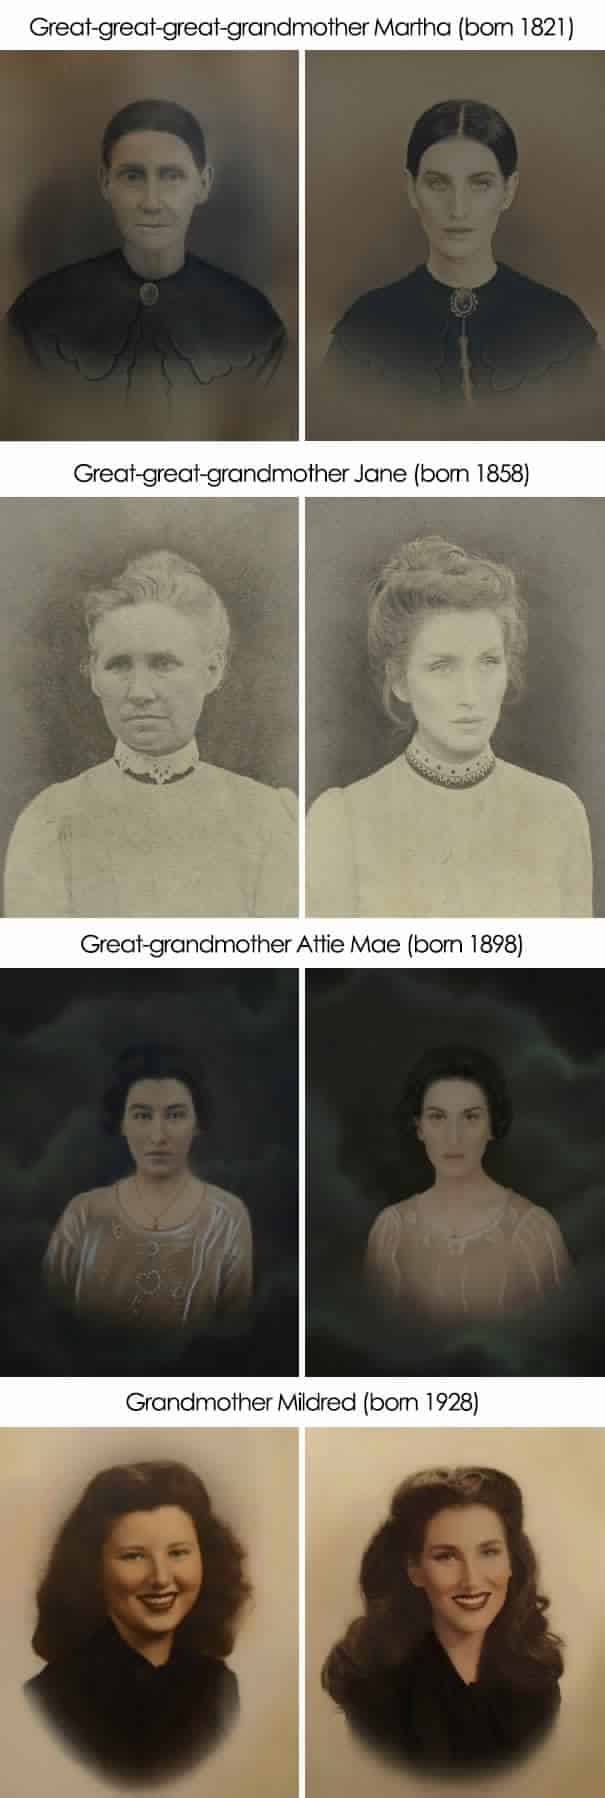 Recreated photos of grandparents that show the resemblance